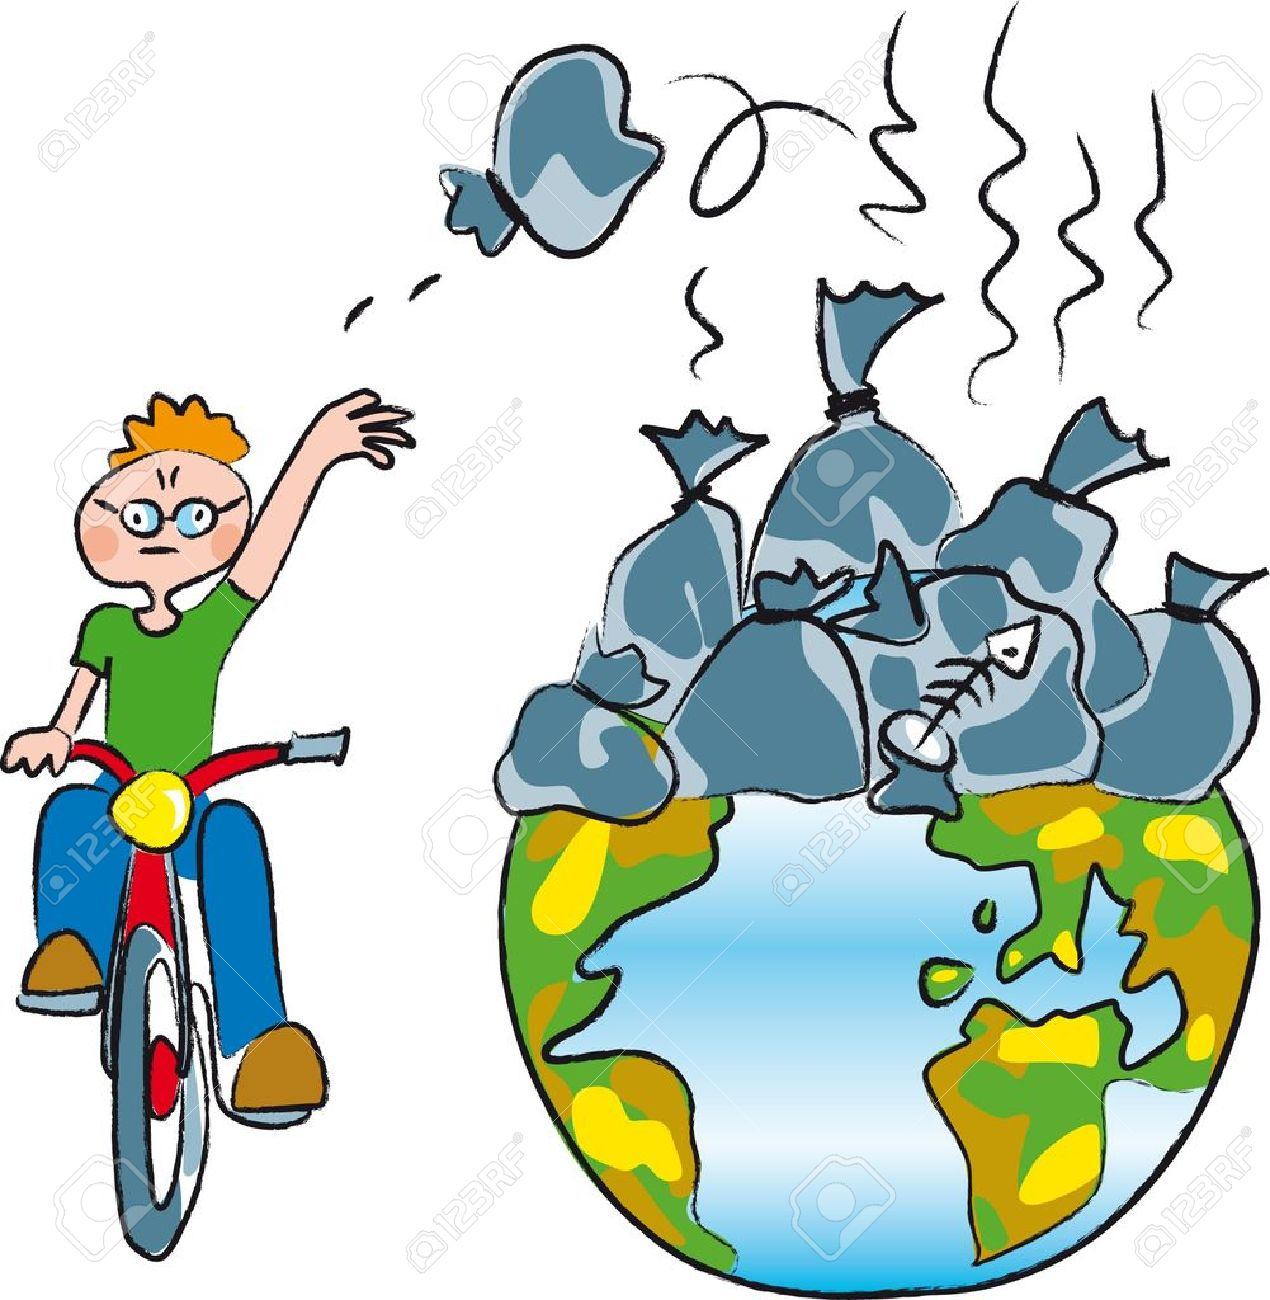 Pollution clipart Land Pollution Download Clipart Pollution